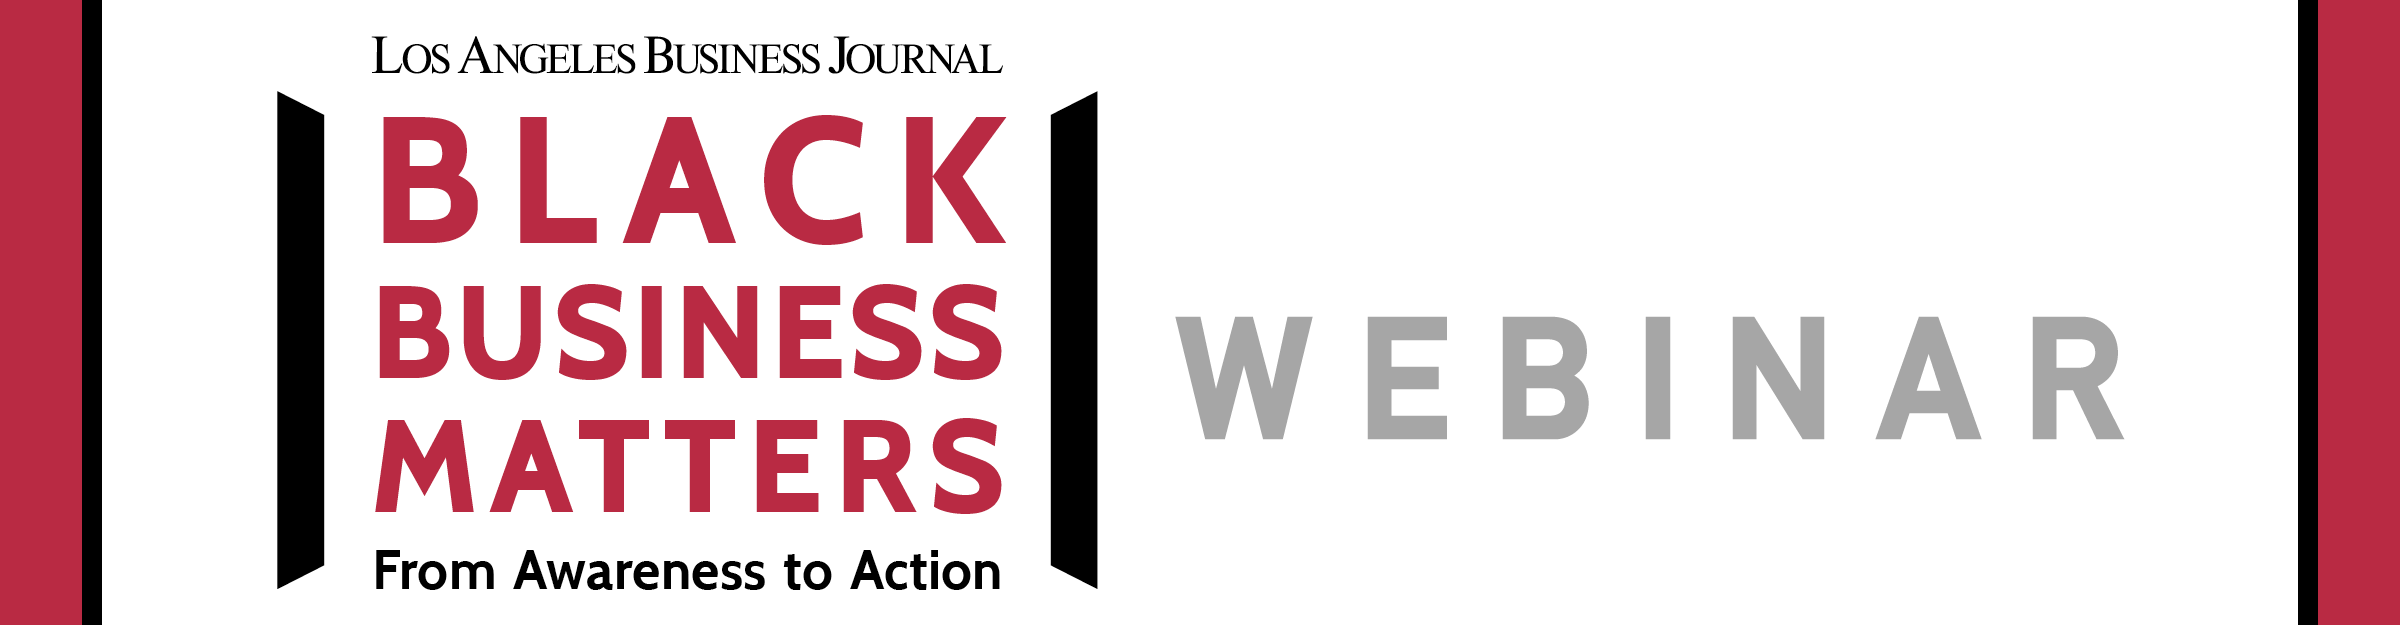 Los Angeles Business Journal Black Business Matters: From Awareness to Action Event Banner